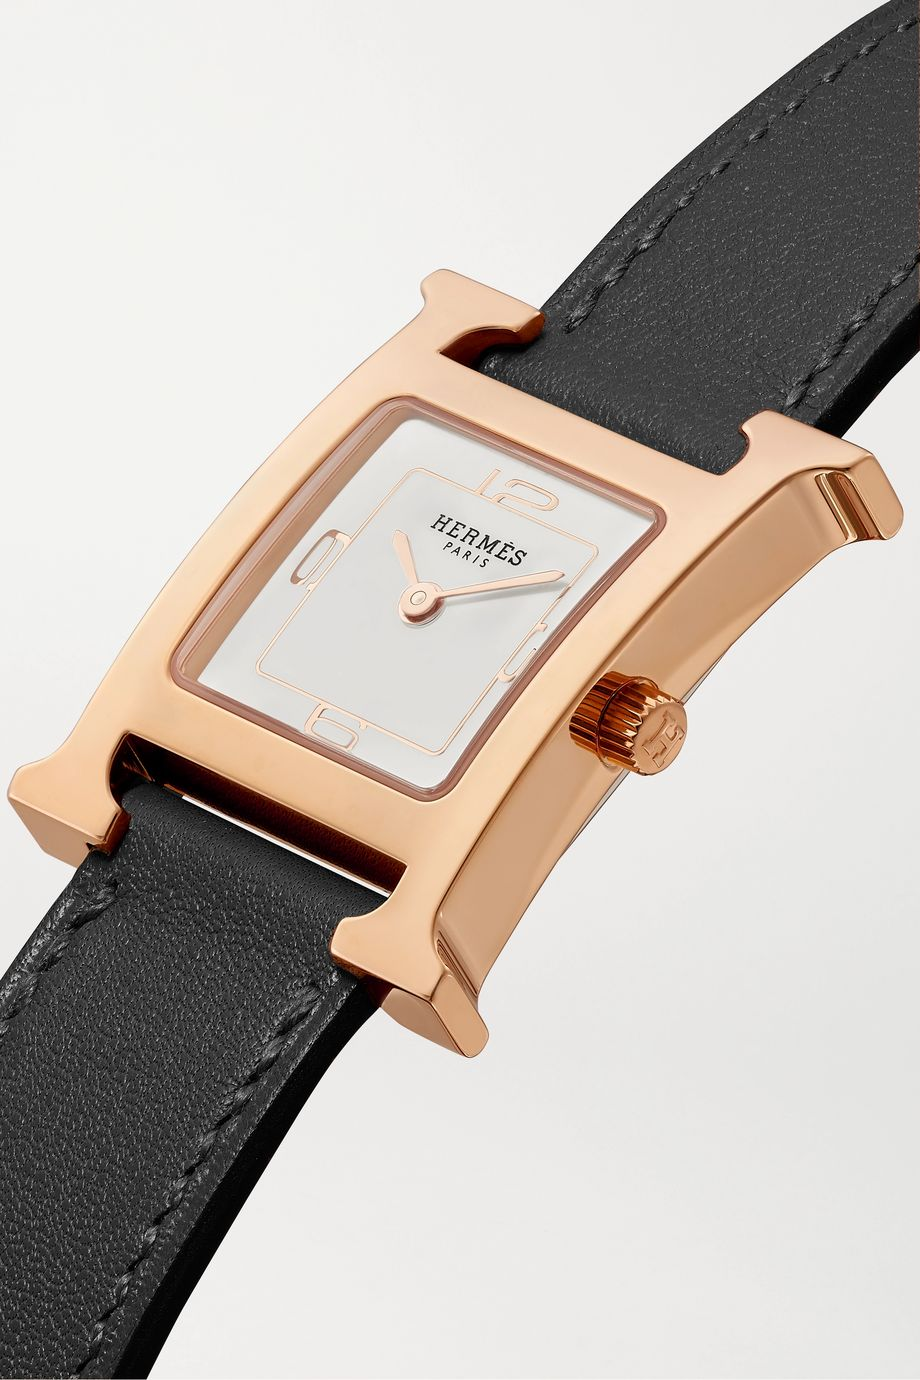 Hermès Timepieces Heure H Double Tour 21mm small rose gold-plated and leather watch